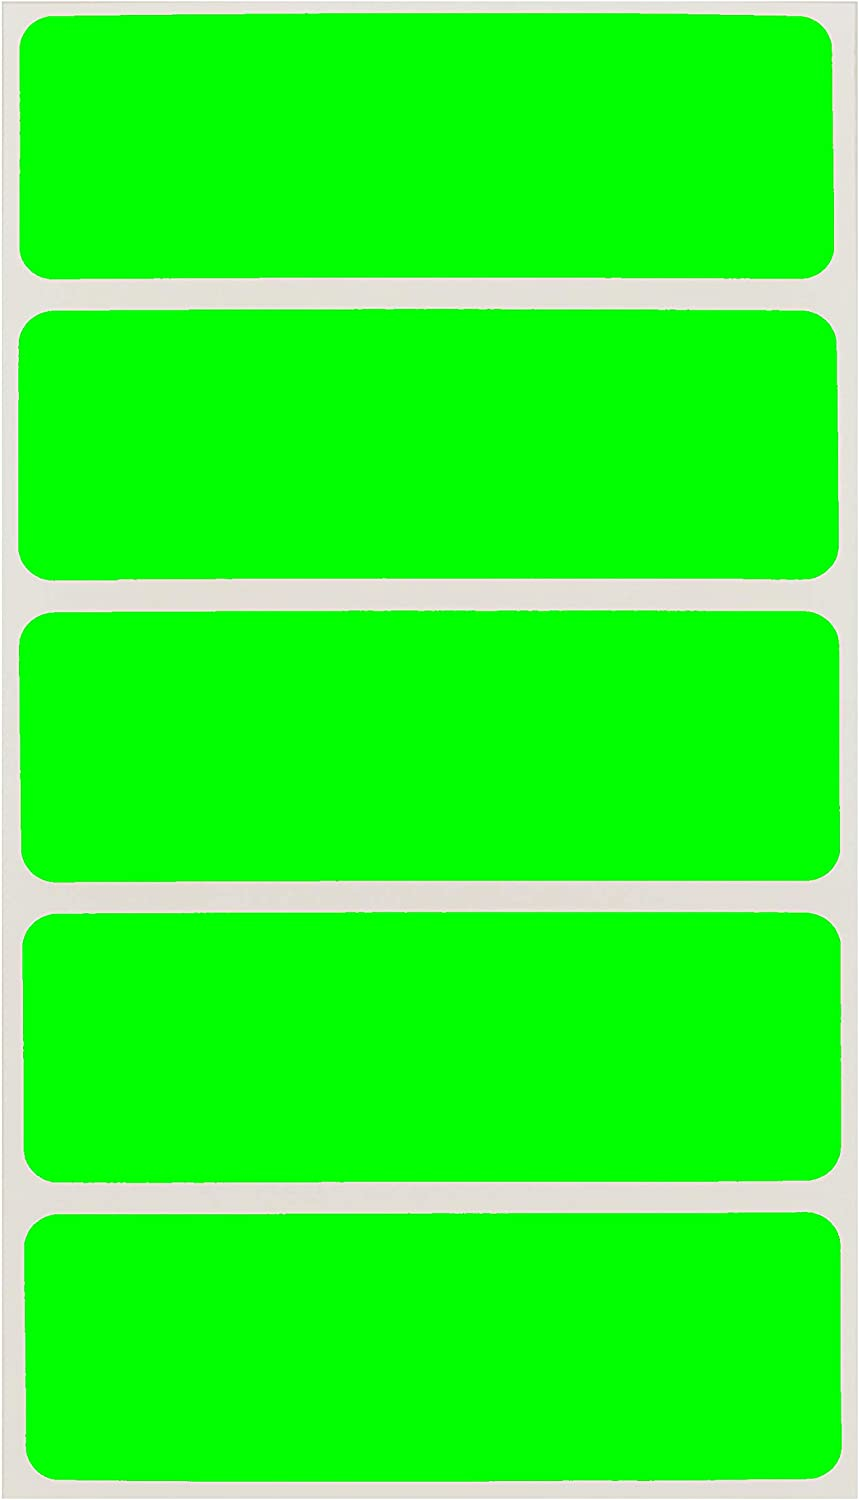 ChromaLabel 1 x 3 Inch Removable Color-Code Rectangle Labels, 150 Stickers/Pack, Fluorescent Green : Office Products